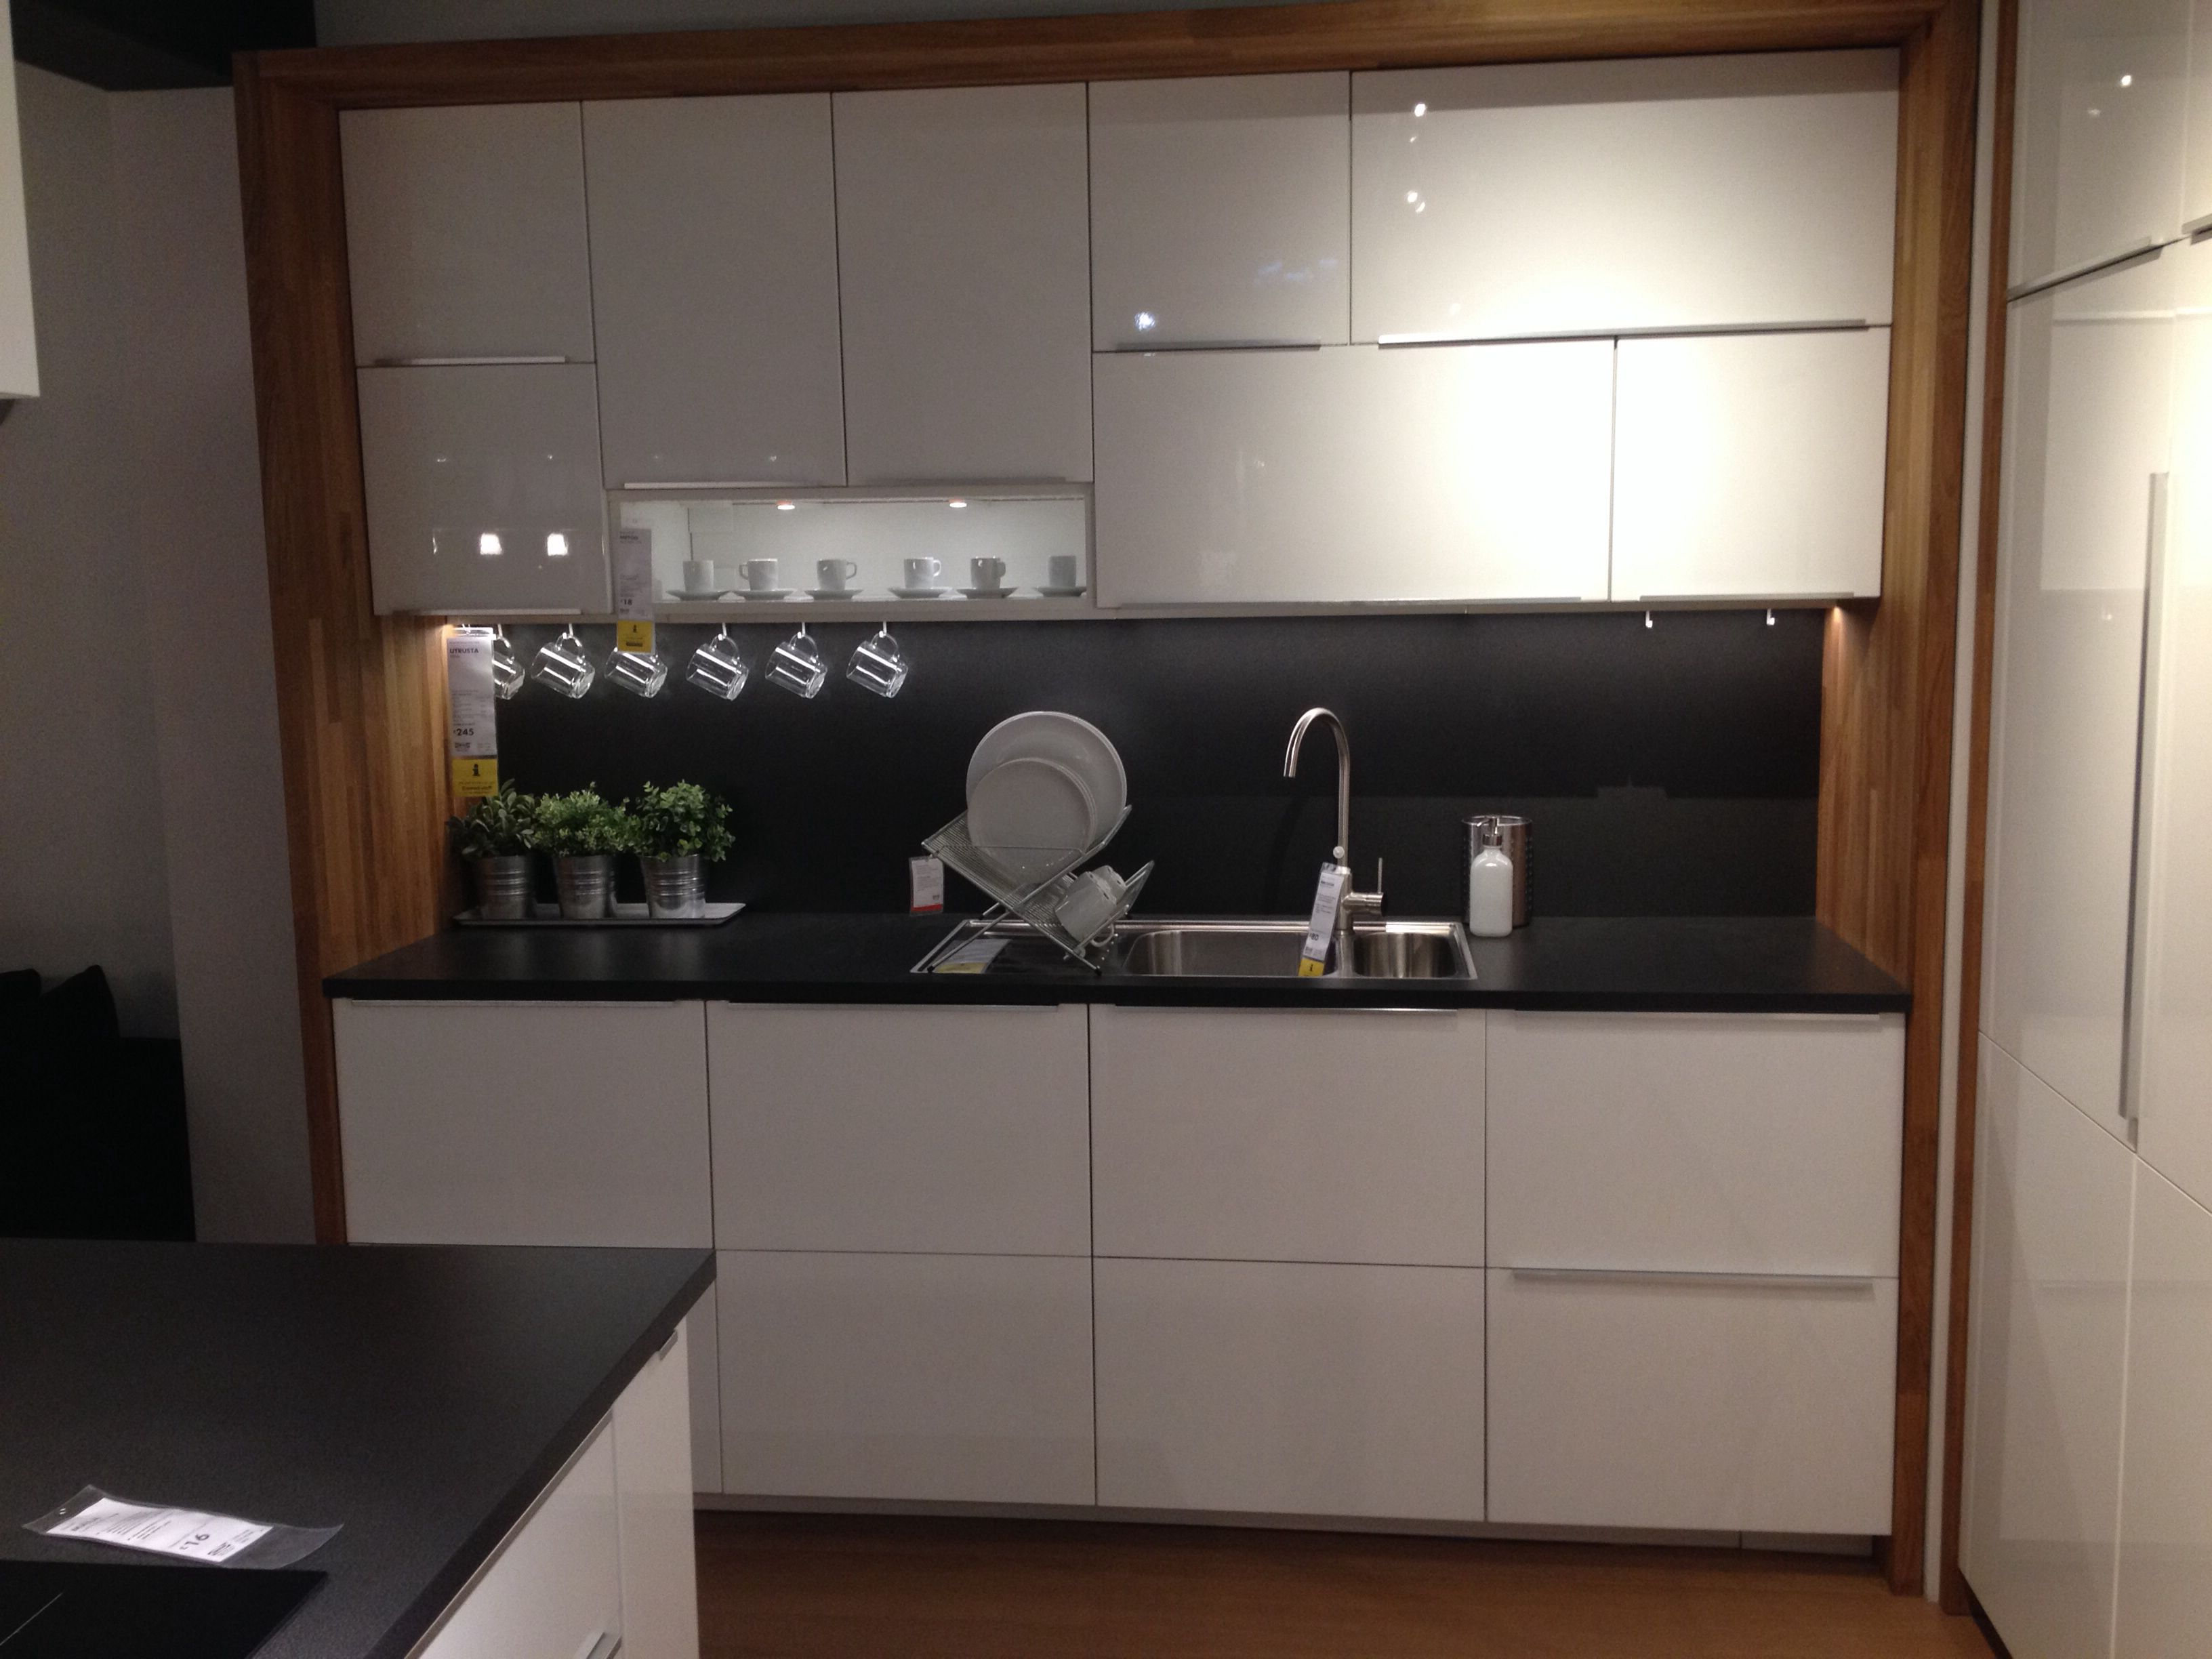 ikea metod kitchen with worktop framing units hausbau pinterest ikea k che haus und ikea. Black Bedroom Furniture Sets. Home Design Ideas